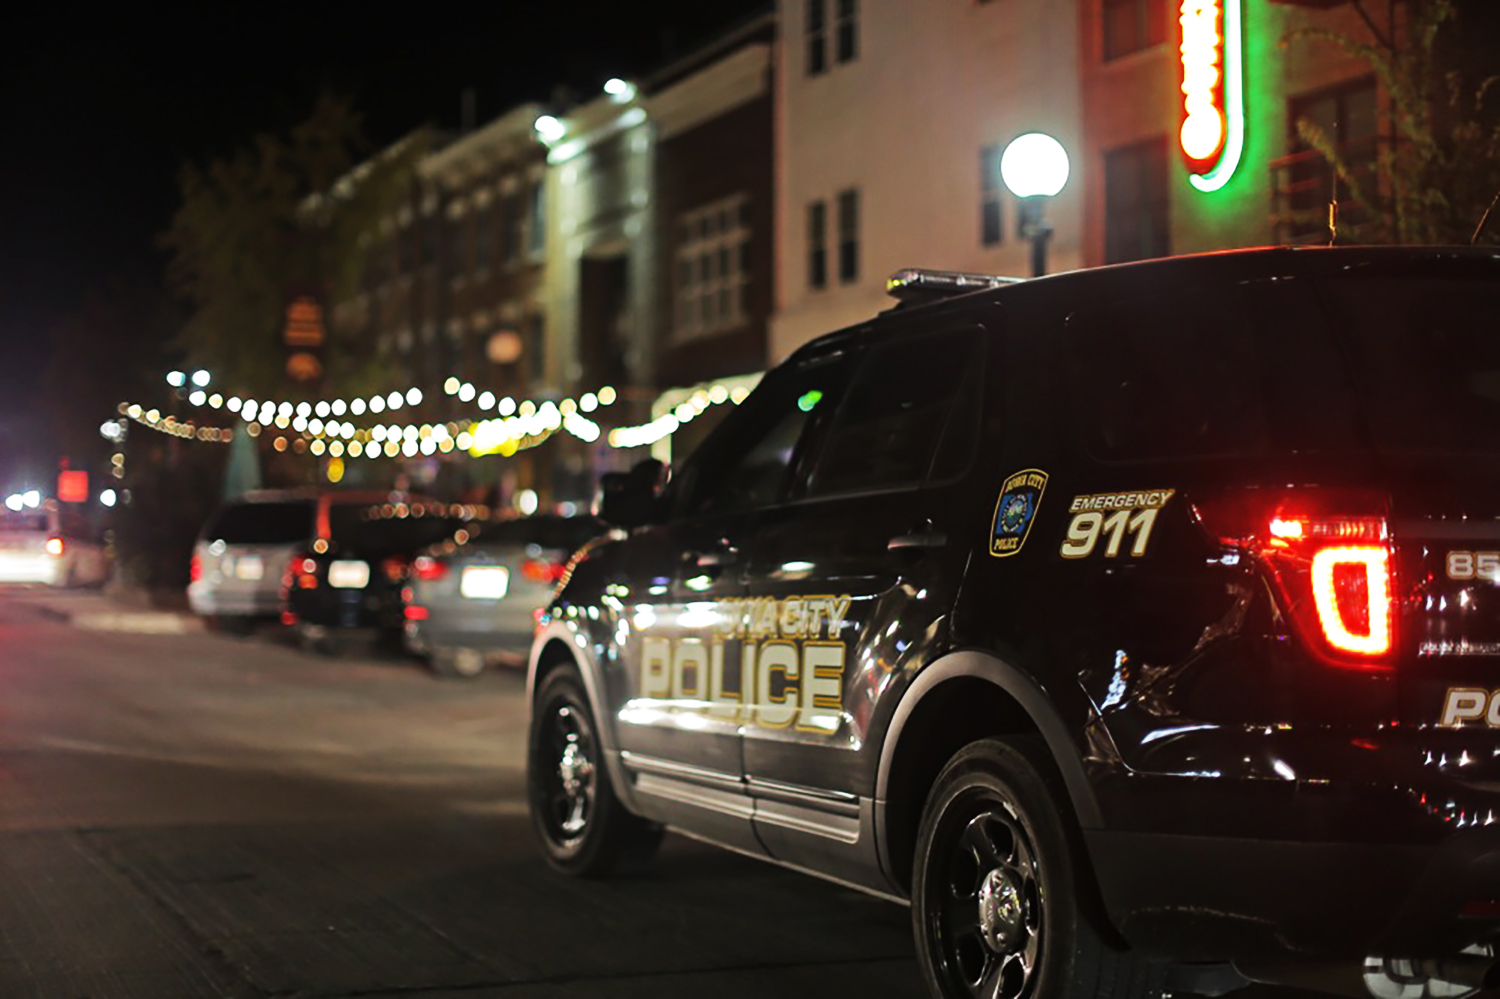 Police patrol the city on homecoming night Friday October 9, 2015. (The Daily Iowan/Jordan Gale)